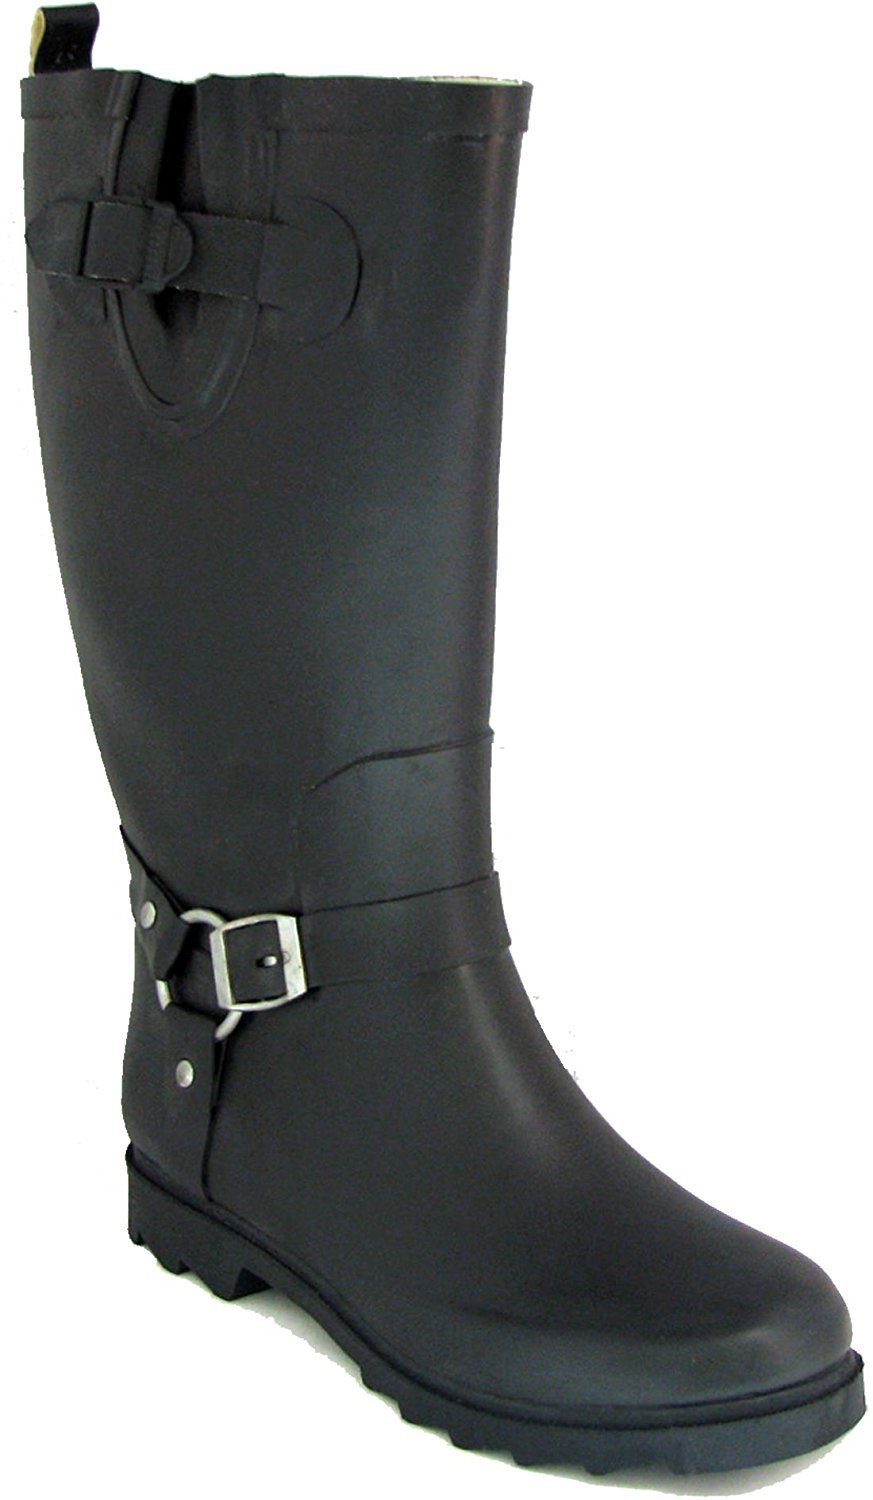 RB Women's Black Rubber Rain Boots Harness Motocycle Mid-Calf Wellies Knee High Snow Boots (8 B(M) US)